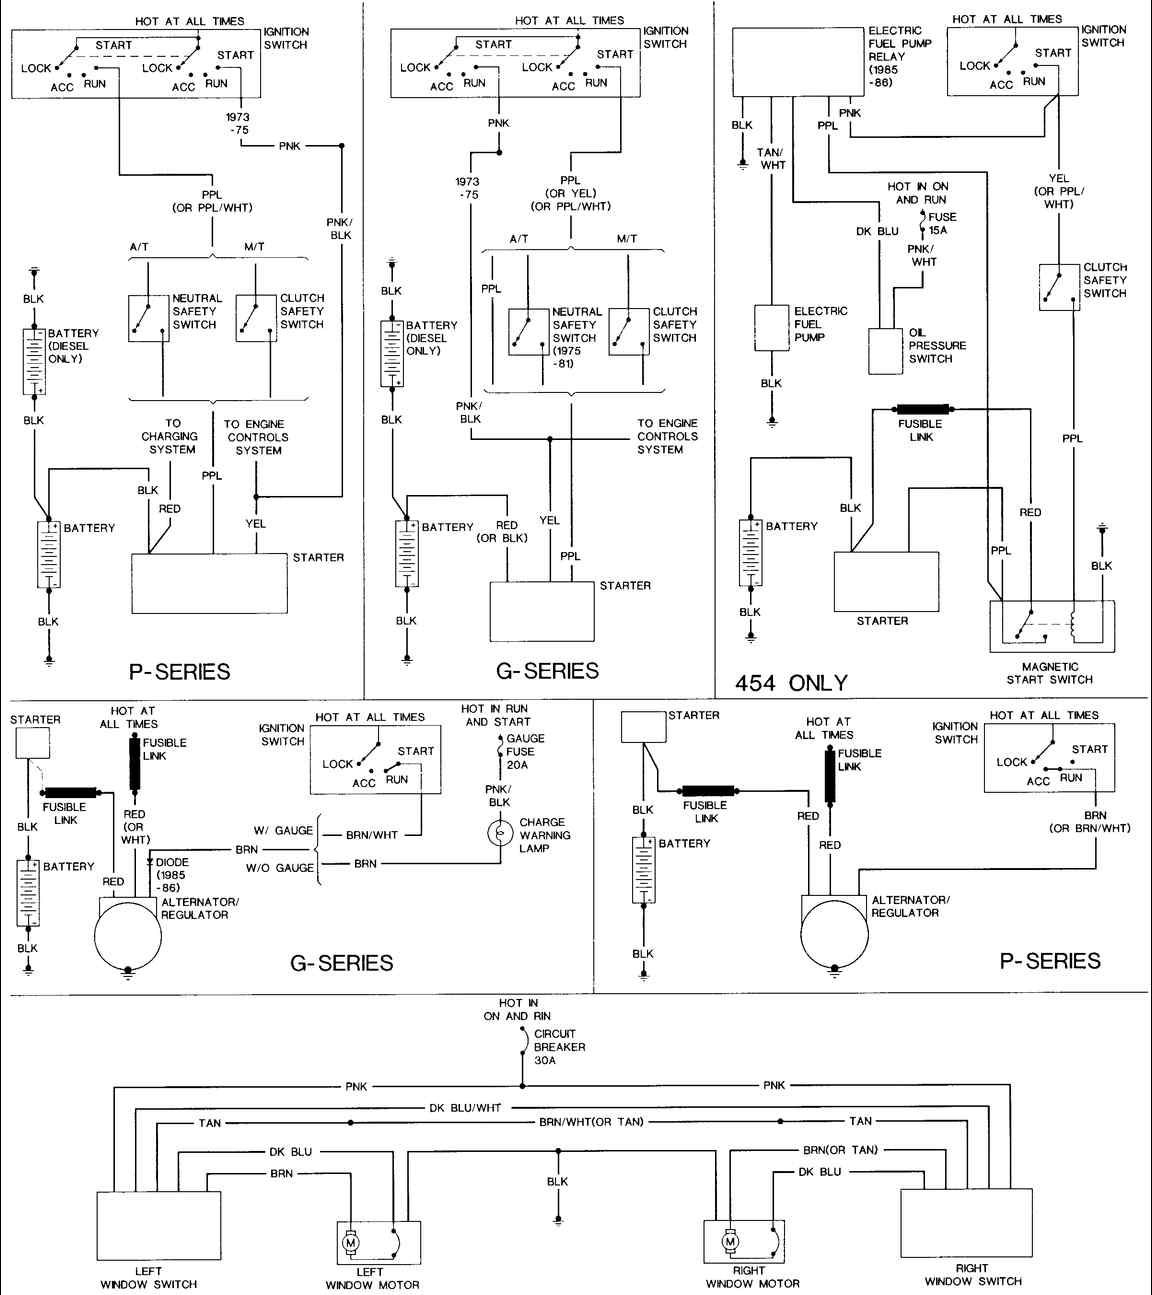 0c73623a181dc376dbb4777e2029d285 85 chevy truck wiring diagram 85 chevy van the steering column rat rod wiring diagram at bayanpartner.co